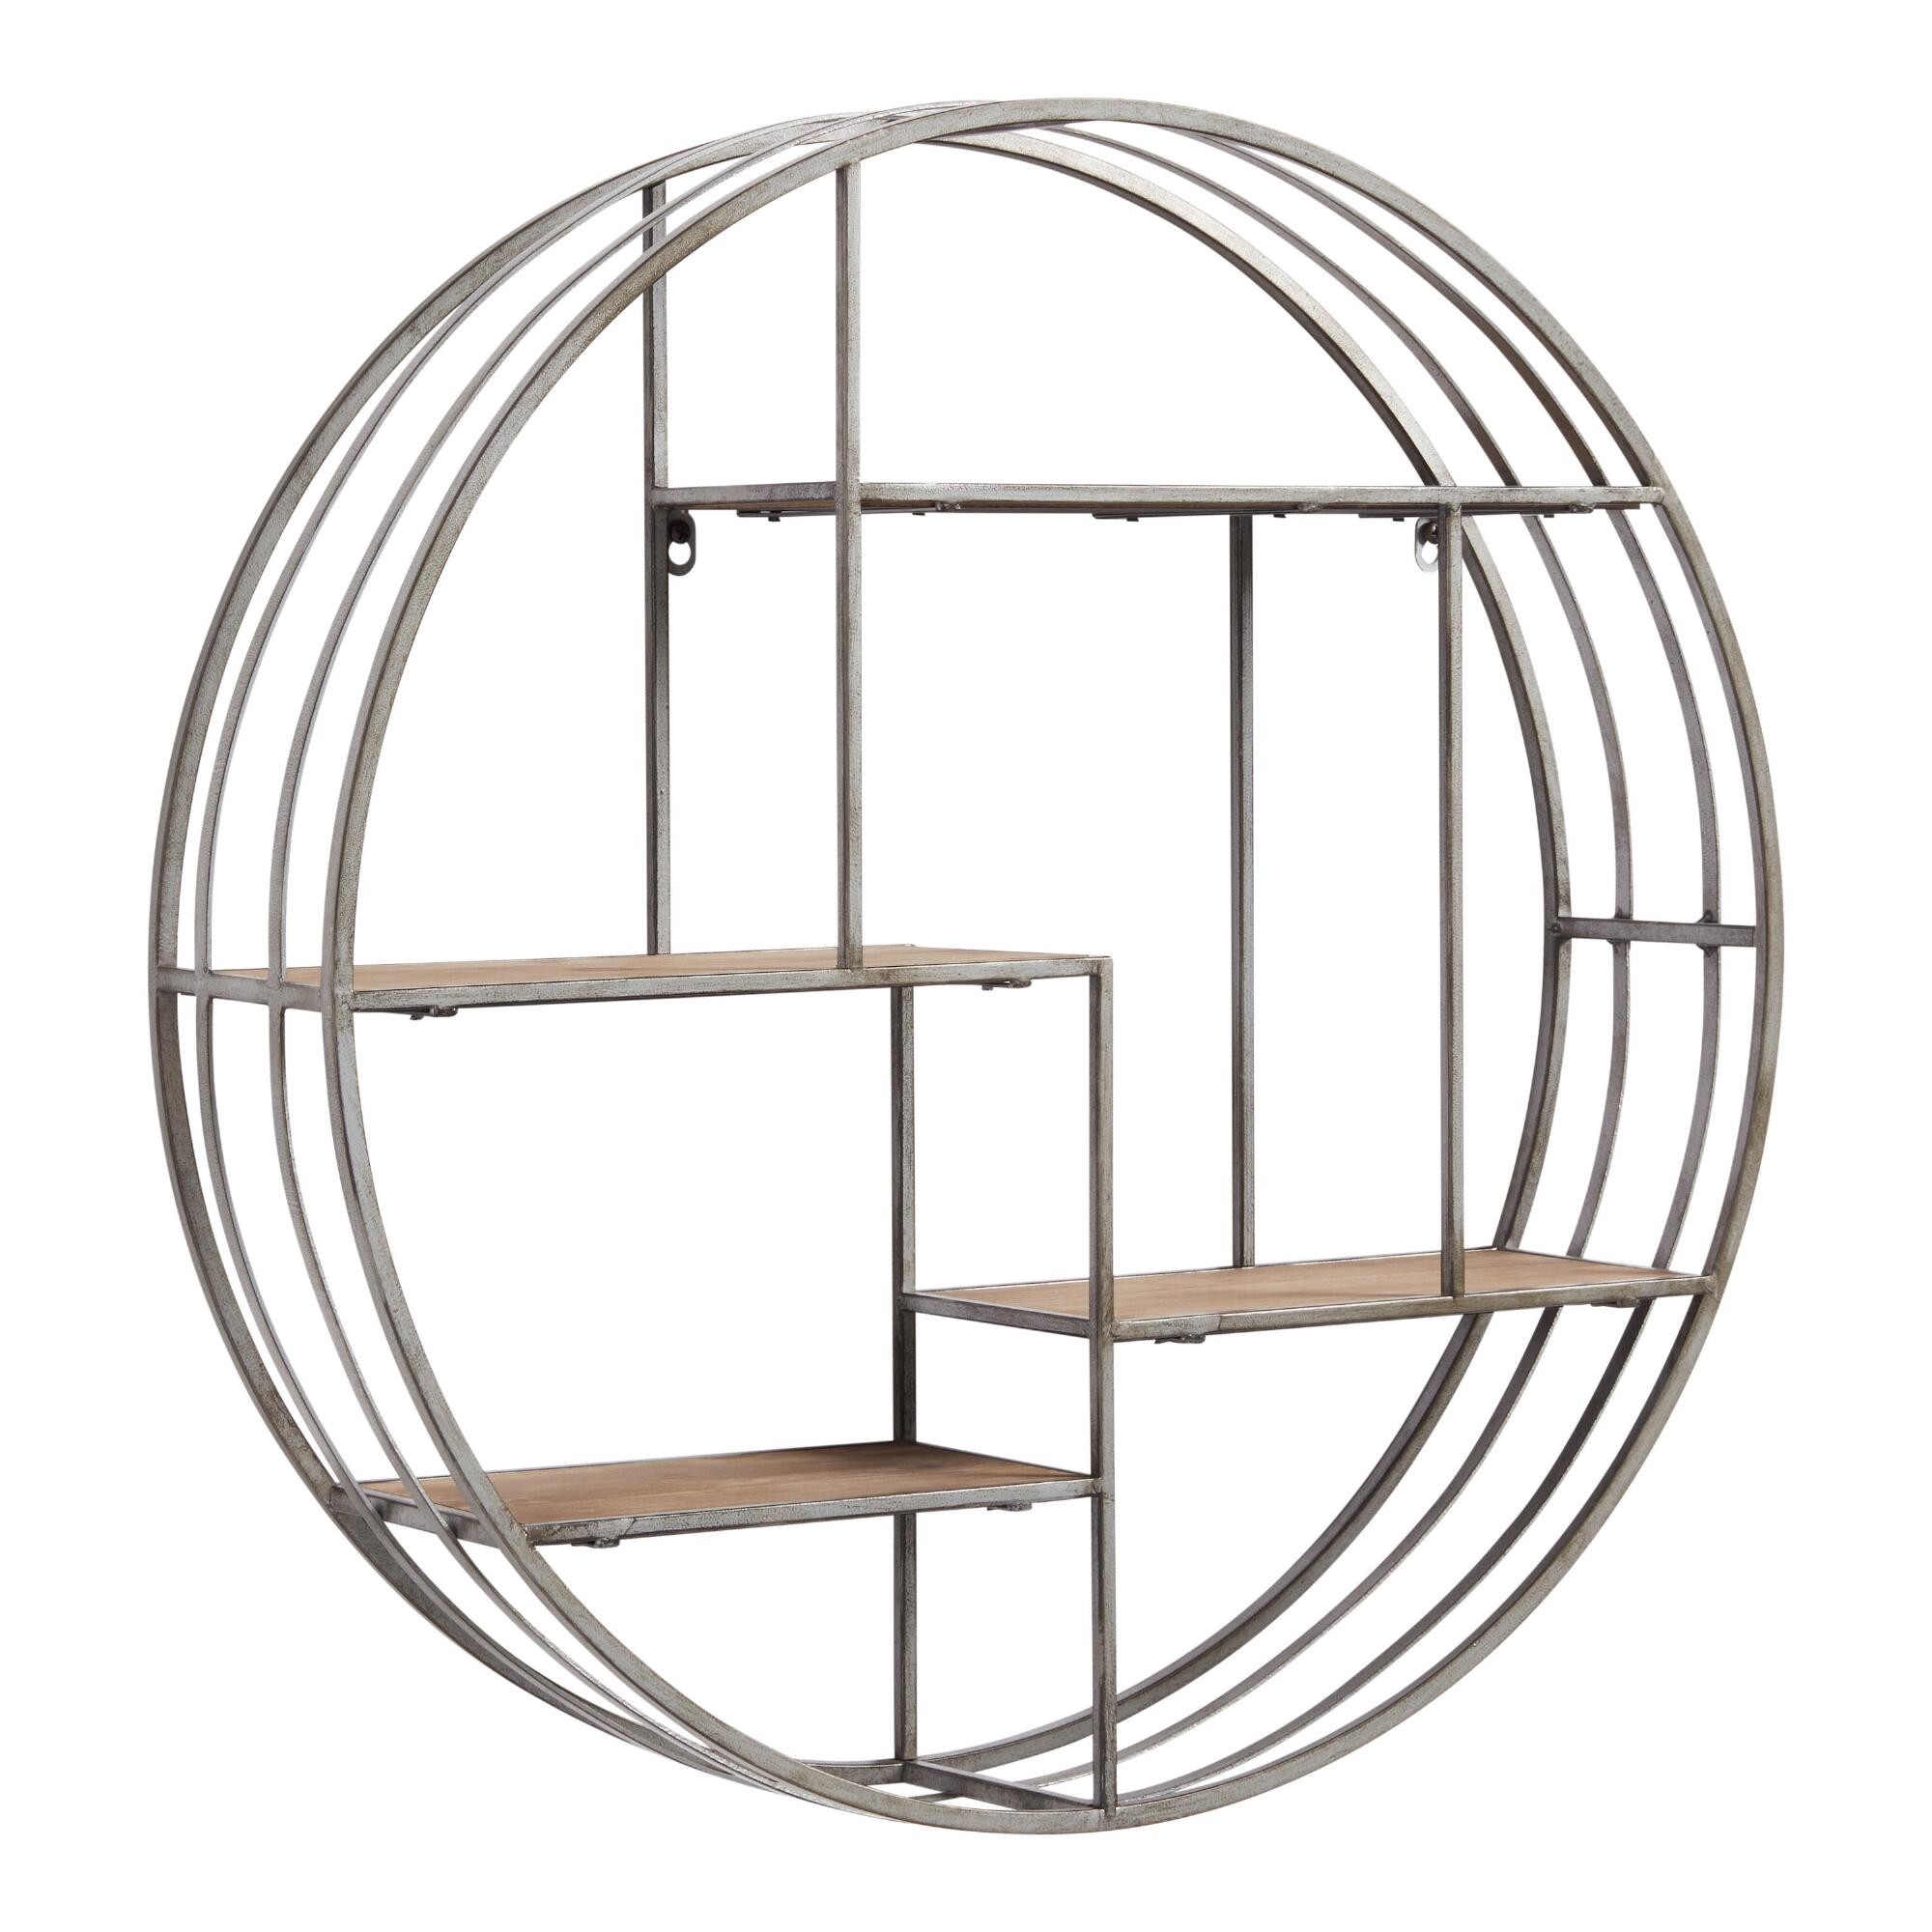 Round Wood and Metal Mateo Wall Storage: Silver by World Market